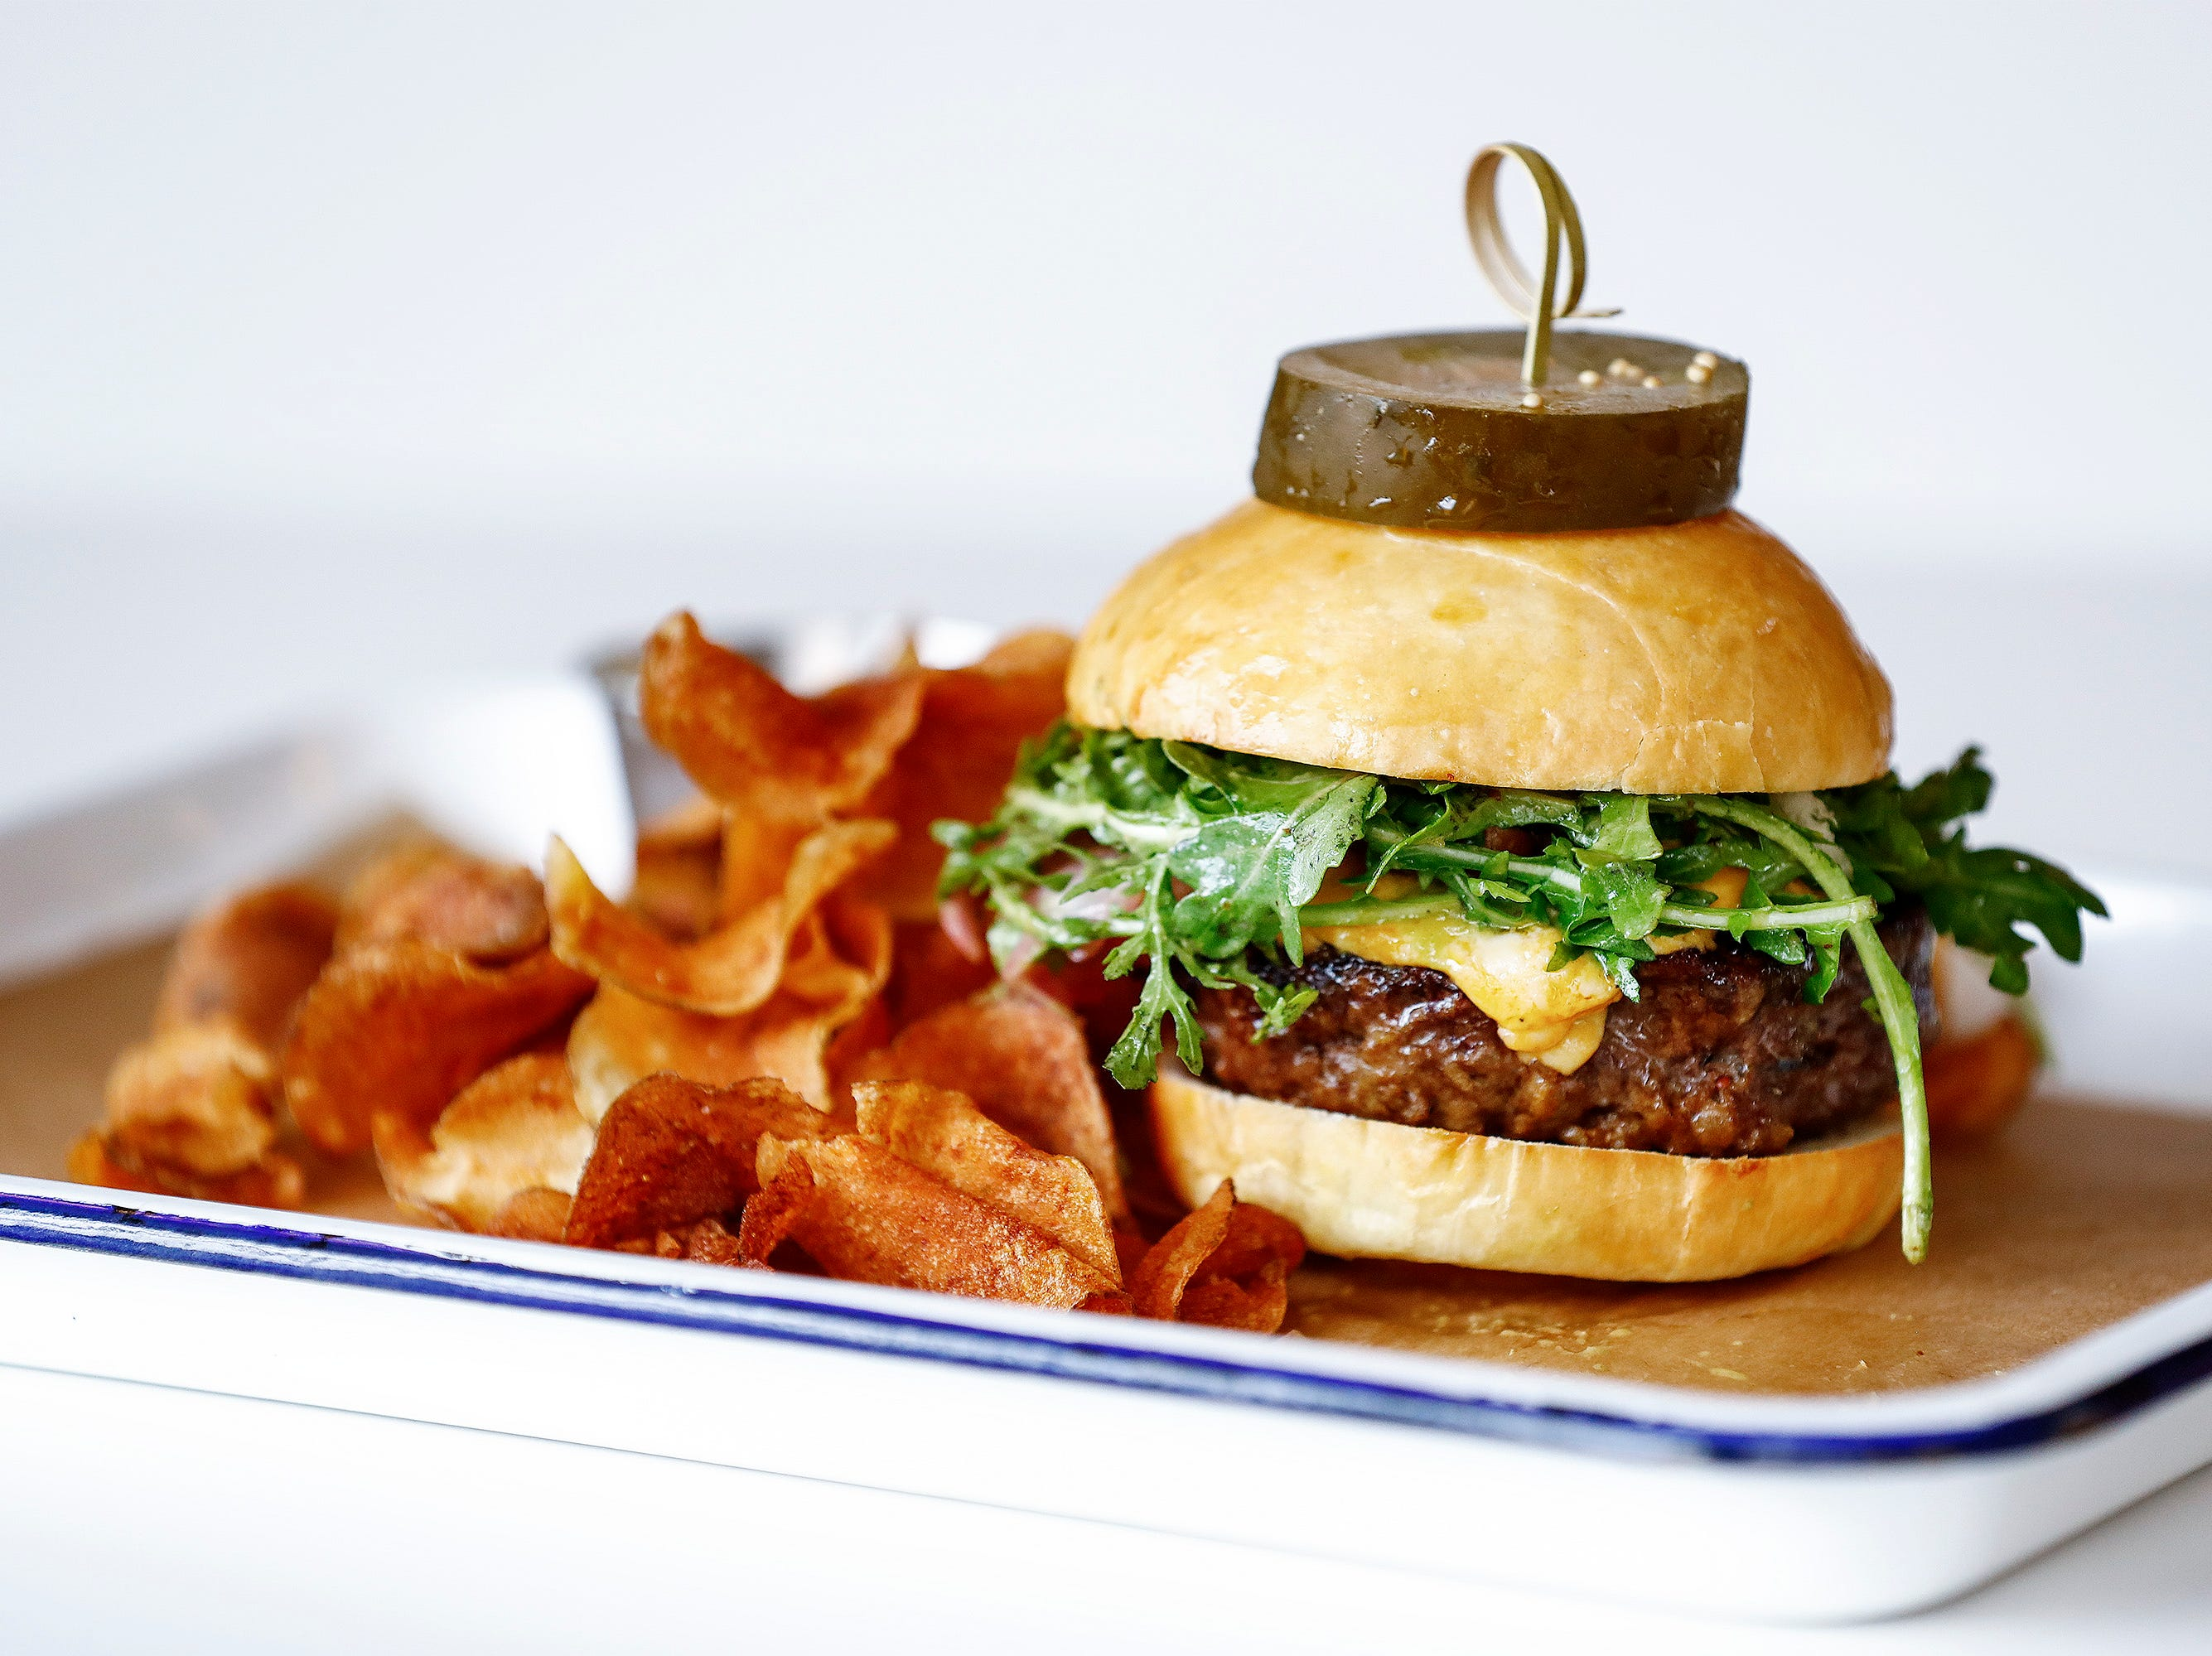 Edge Alley restaurant's burger is locally sourced beef served on a housemaid brioche bun.